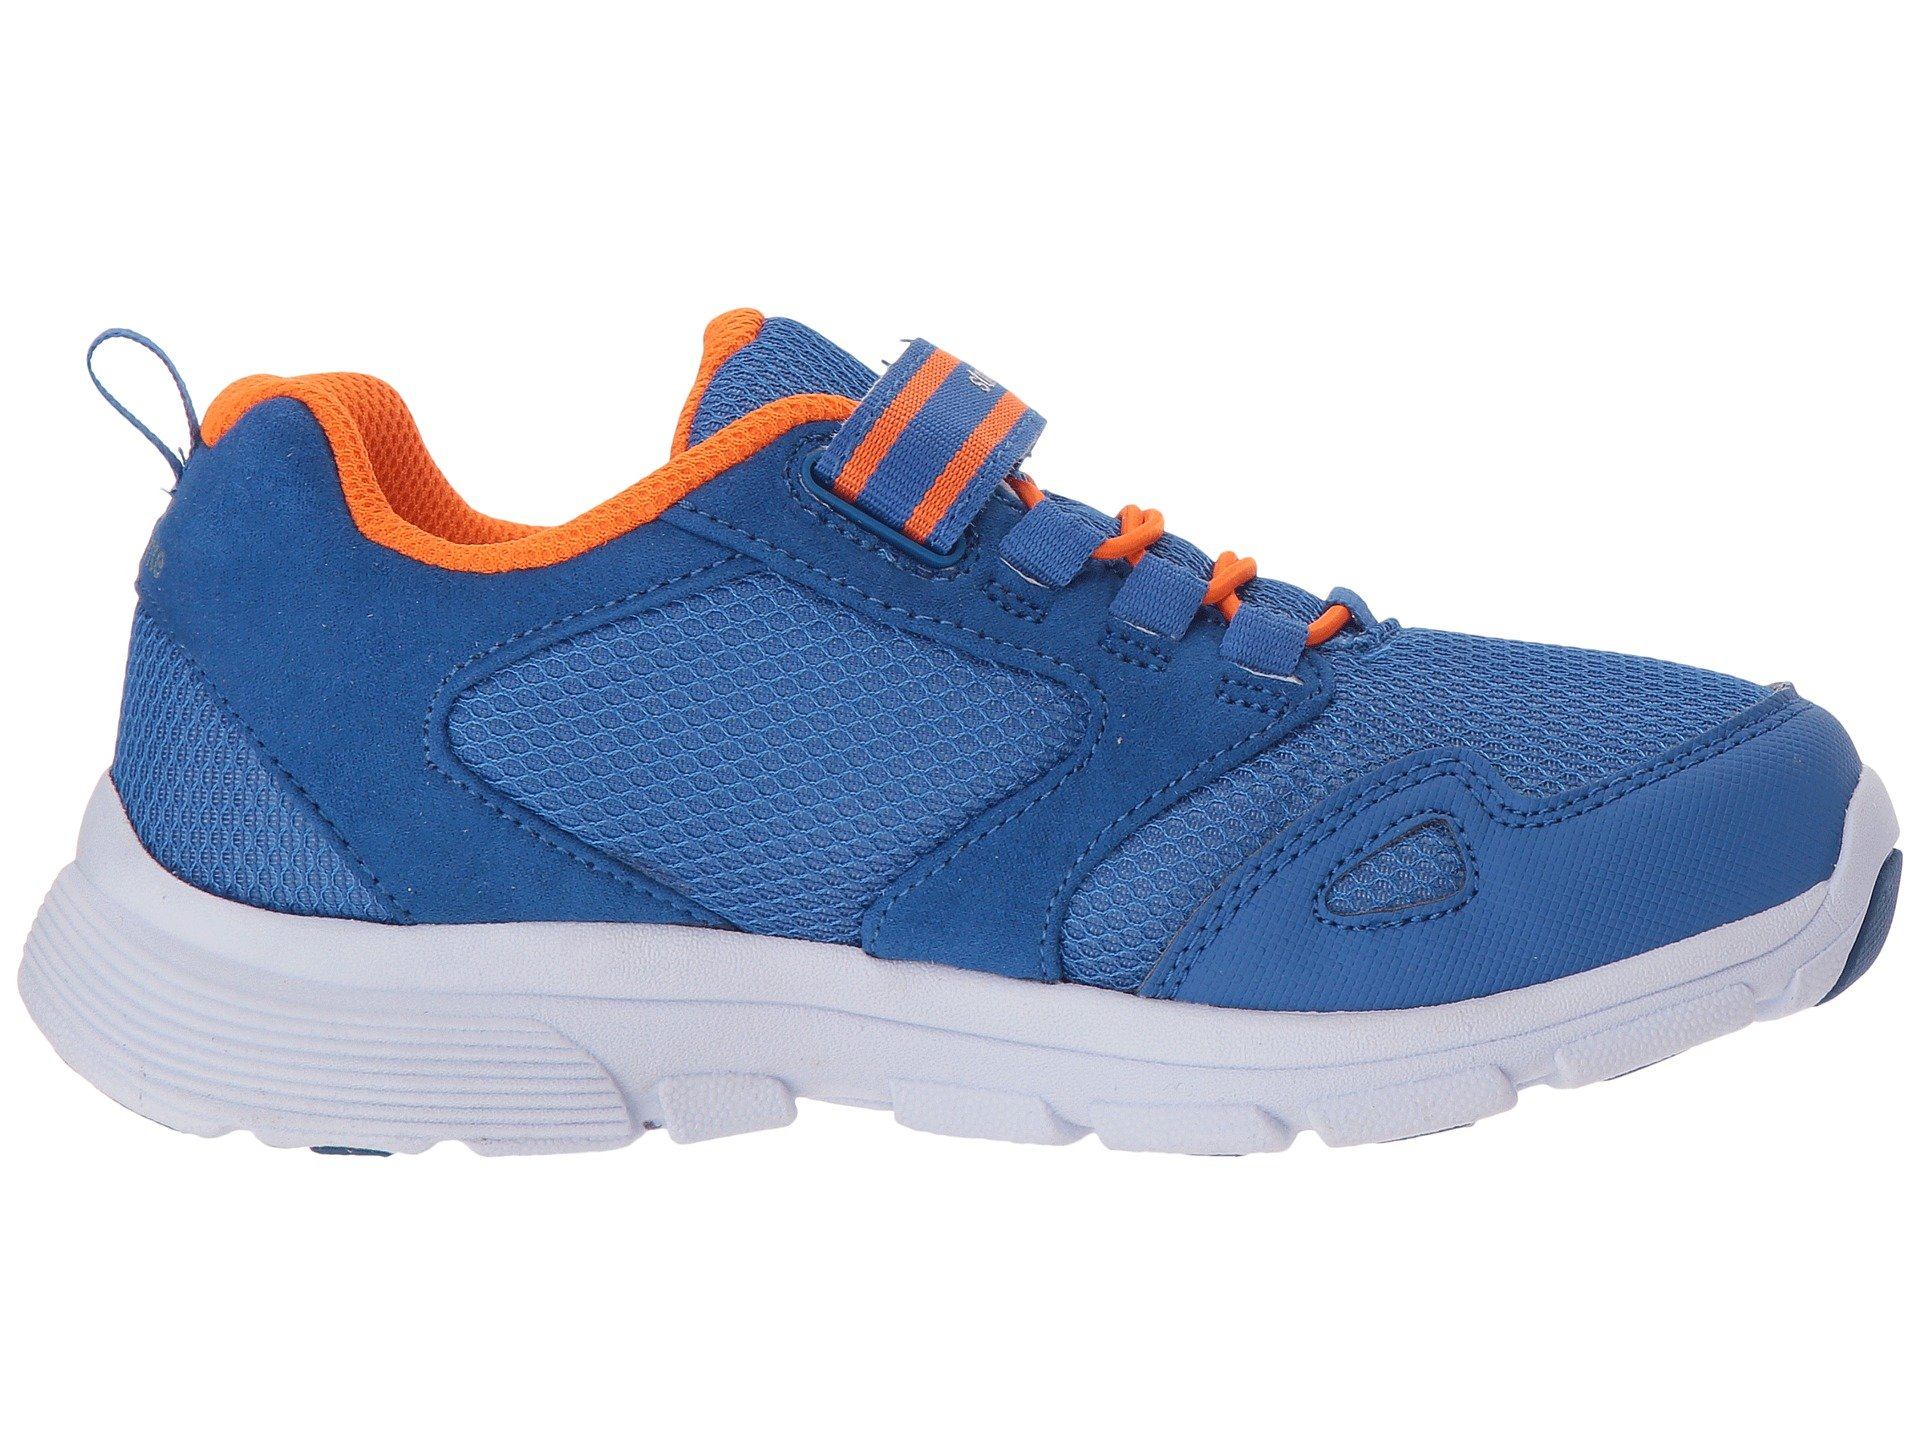 Stride Rite Mens Made 2 Play Taylor (Toddler/Little Kid) Royal 5.5 Toddler M by Stride Rite (Image #8)